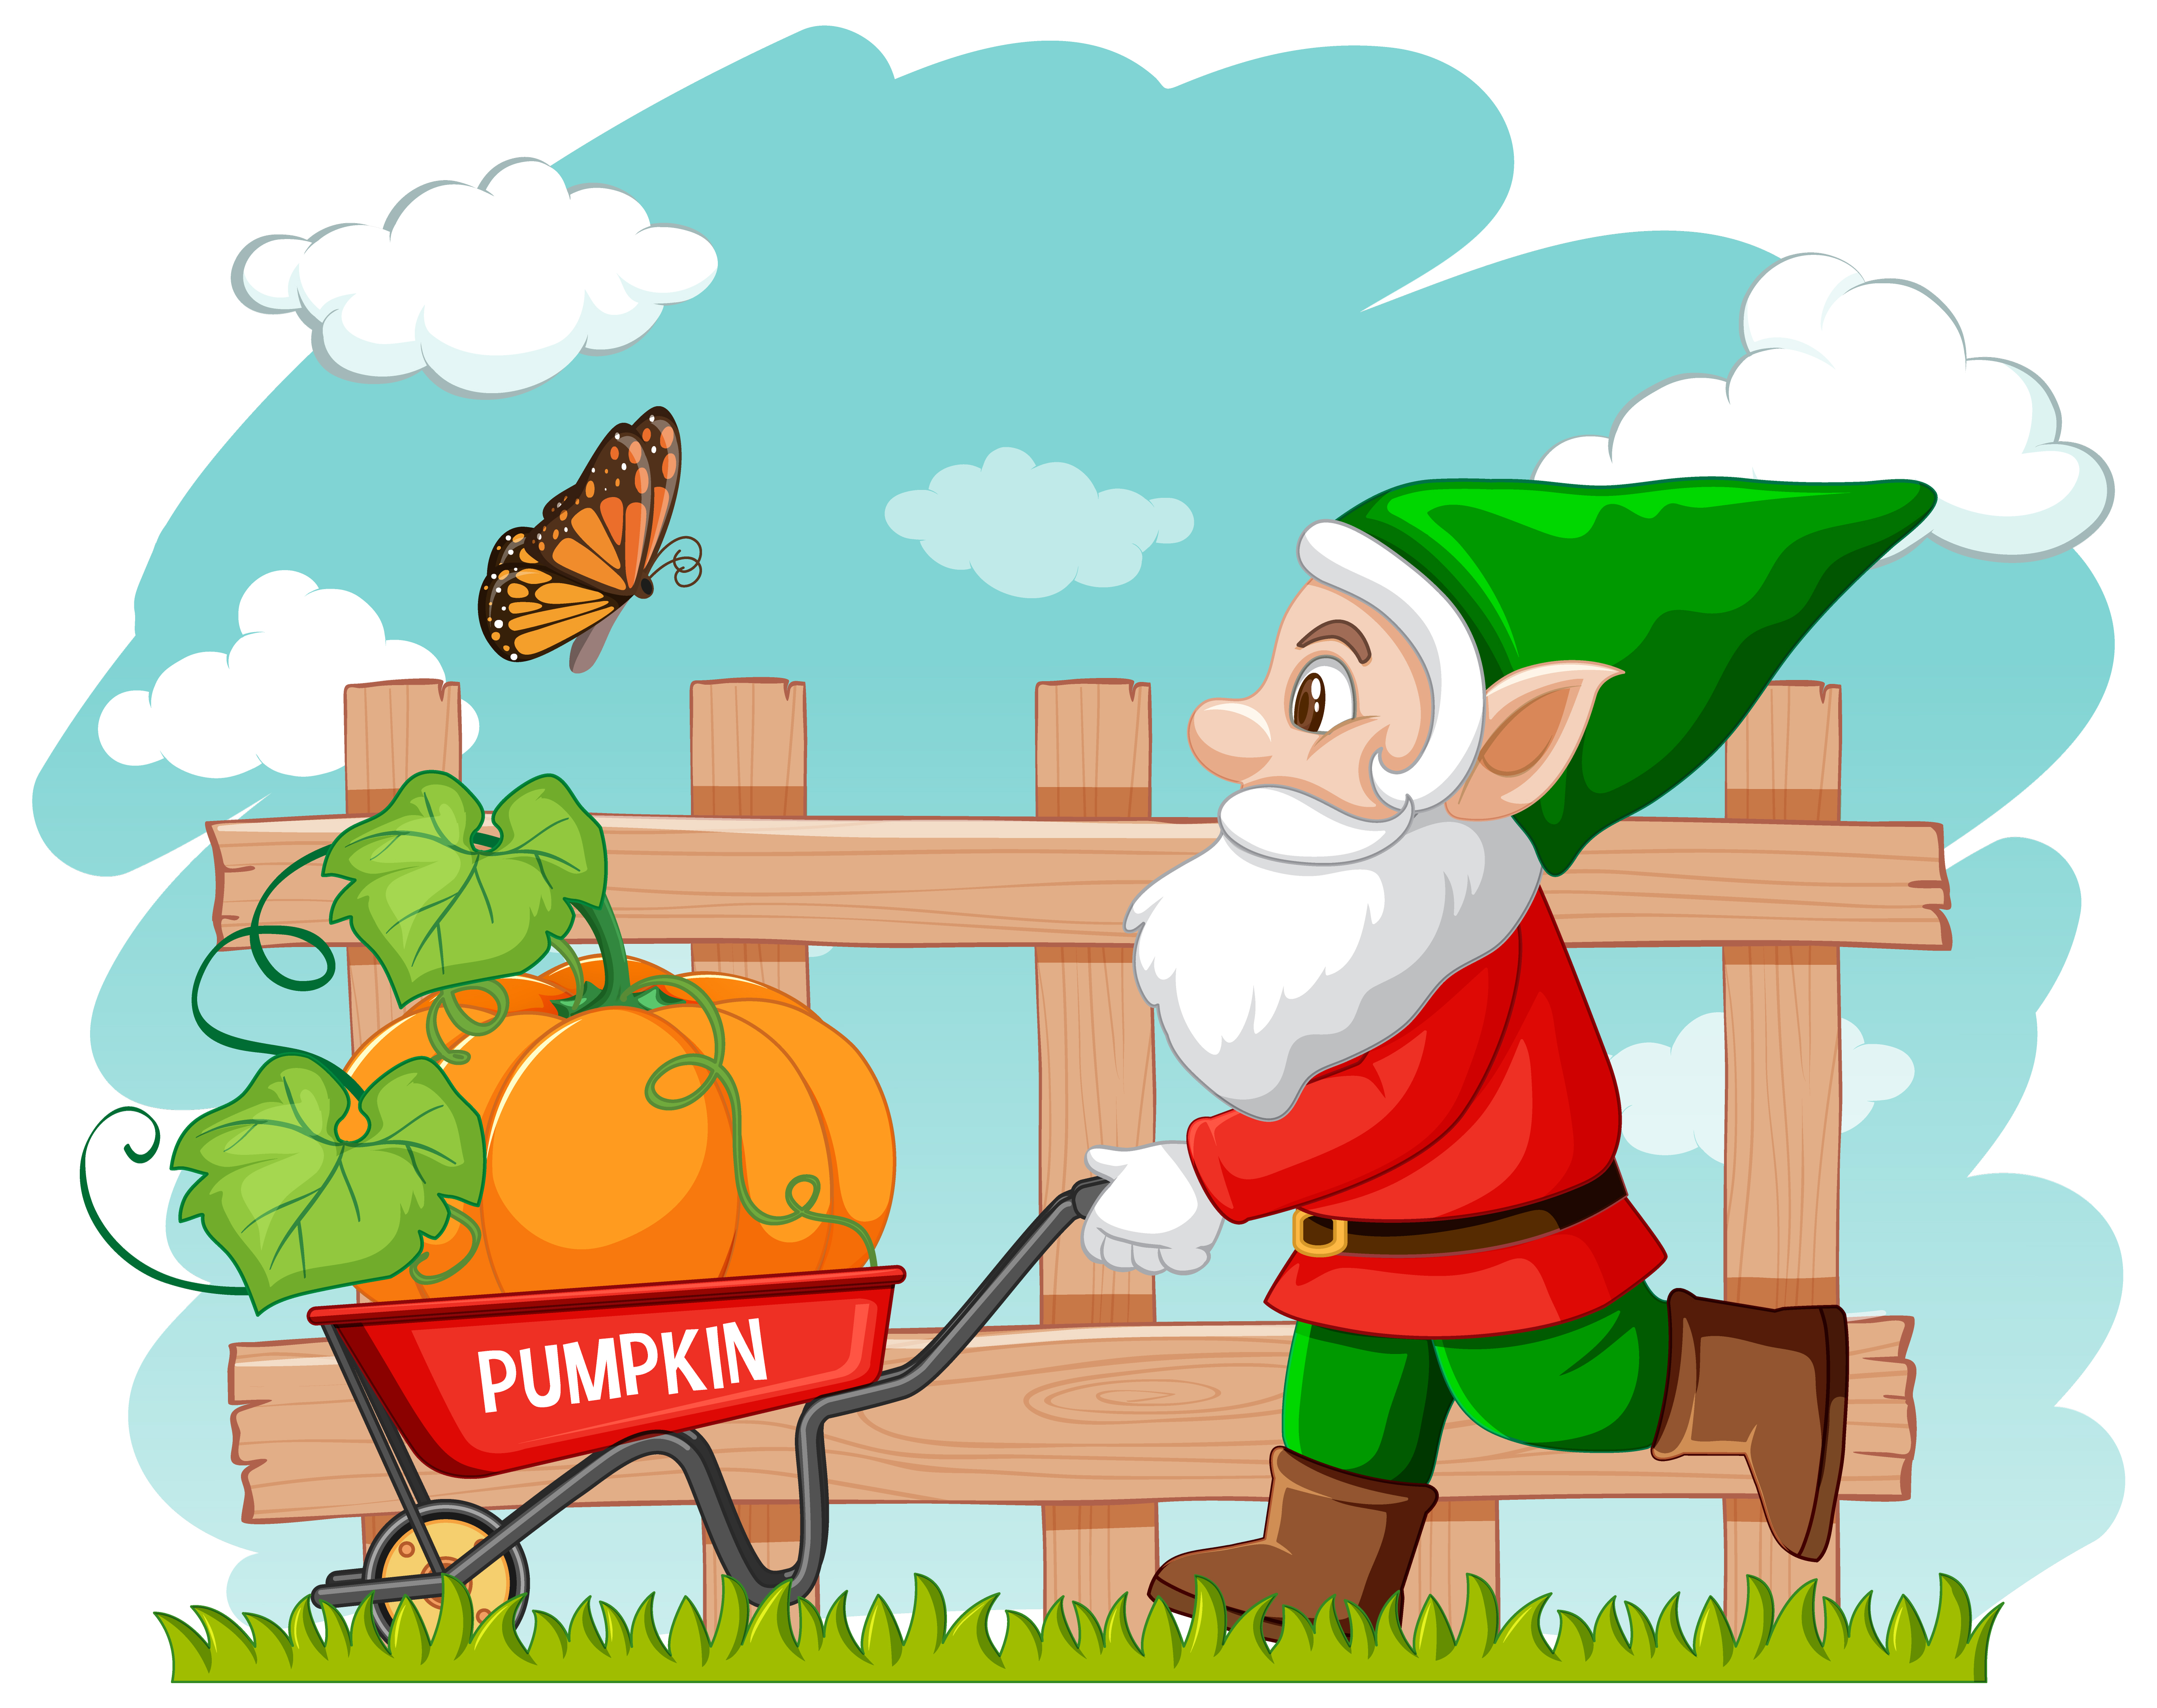 Download HD Free Download Travelocity Gnome Vector Clipart Garden - Gnome  Travel Transparent PNG Image - NicePNG.com